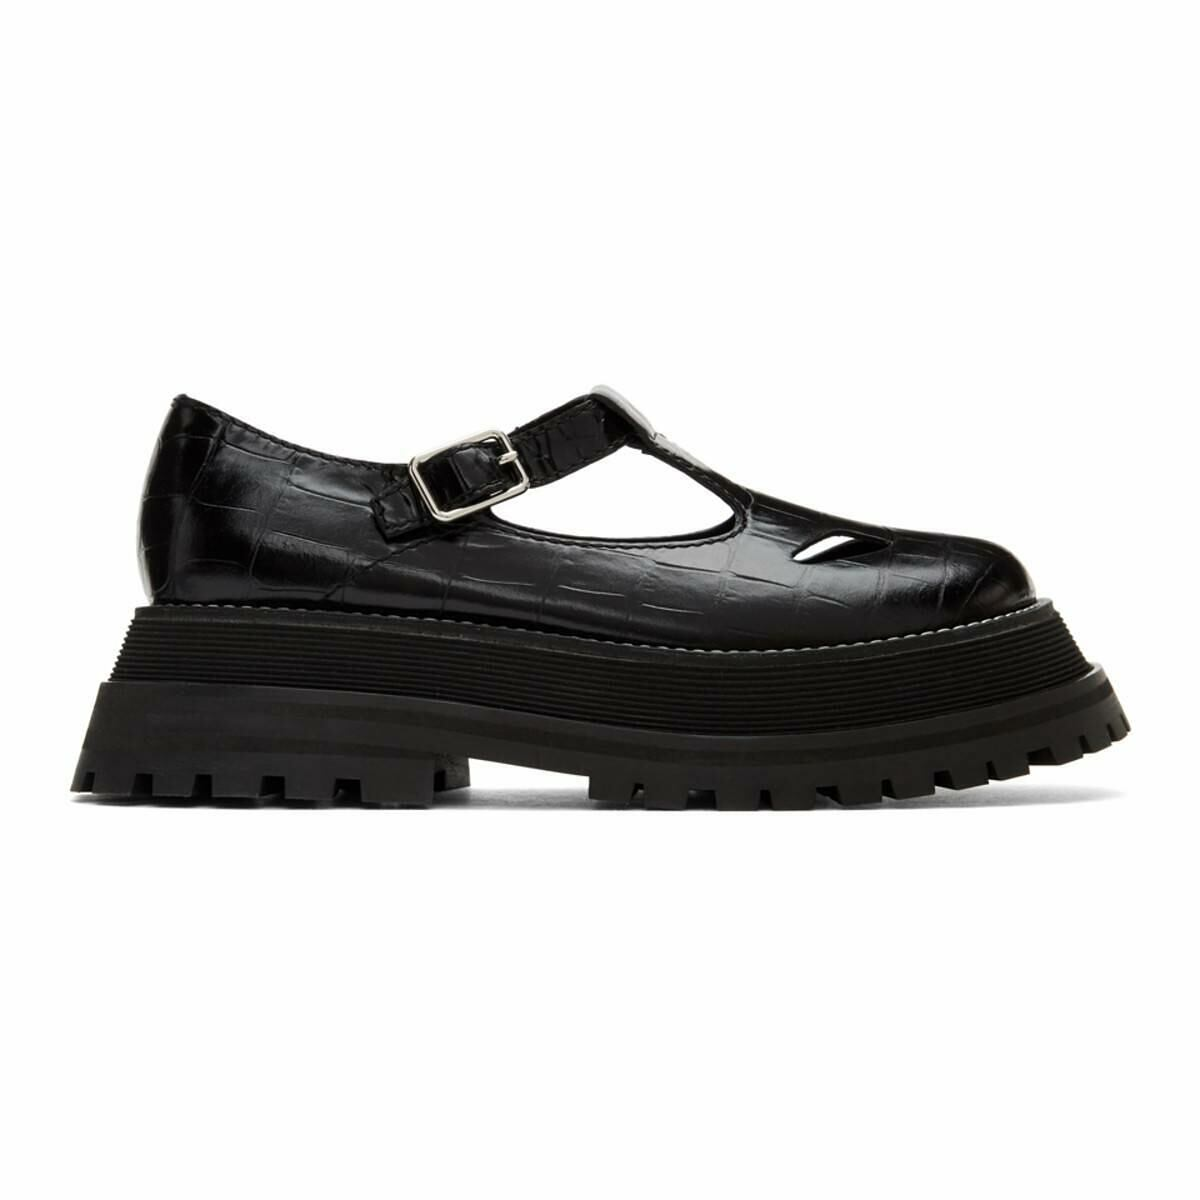 Burberry Black T-Bar Loafers Ssense USA WOMEN Women SHOES Womens LEATHER SHOES